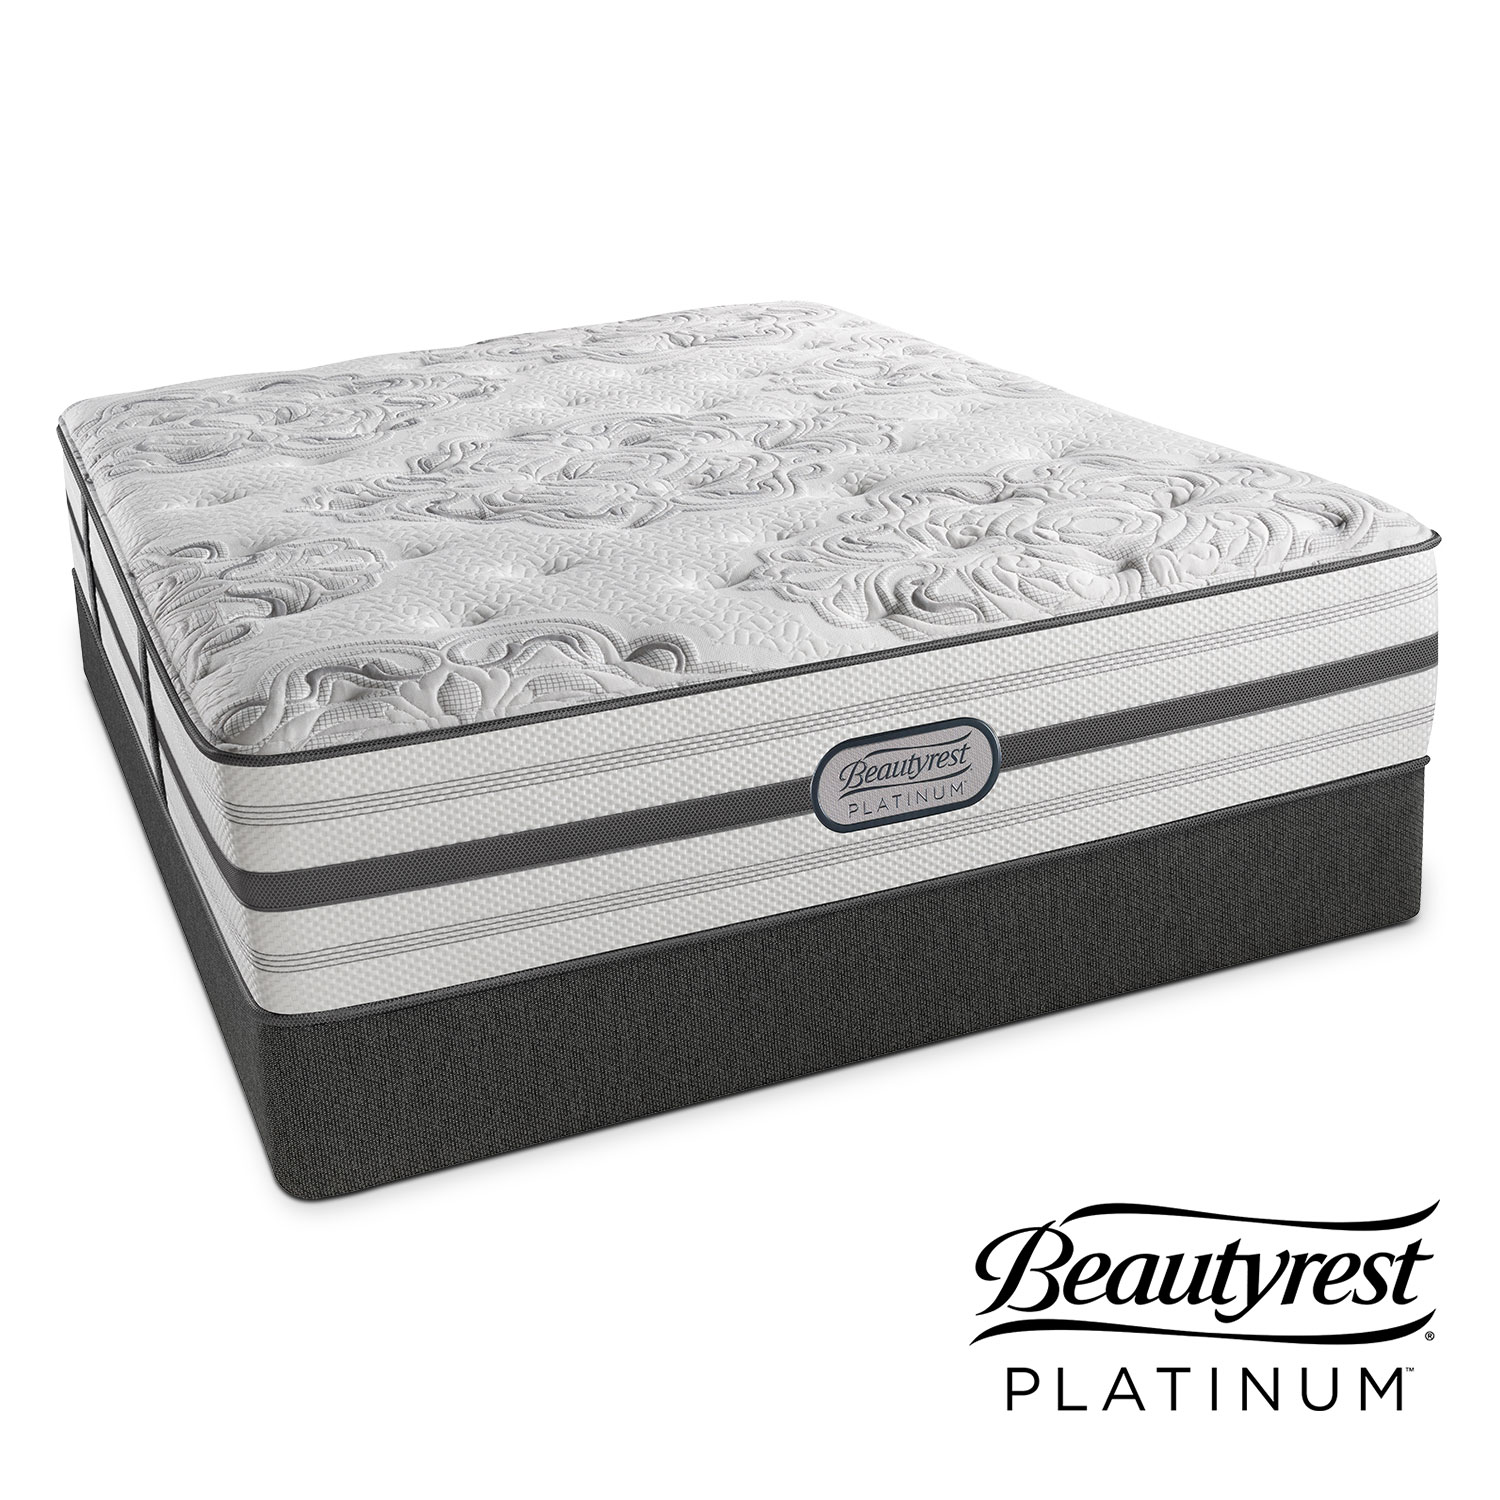 Mattresses and Bedding - Alexandria Luxury Firm Twin Mattress and Foundation Set